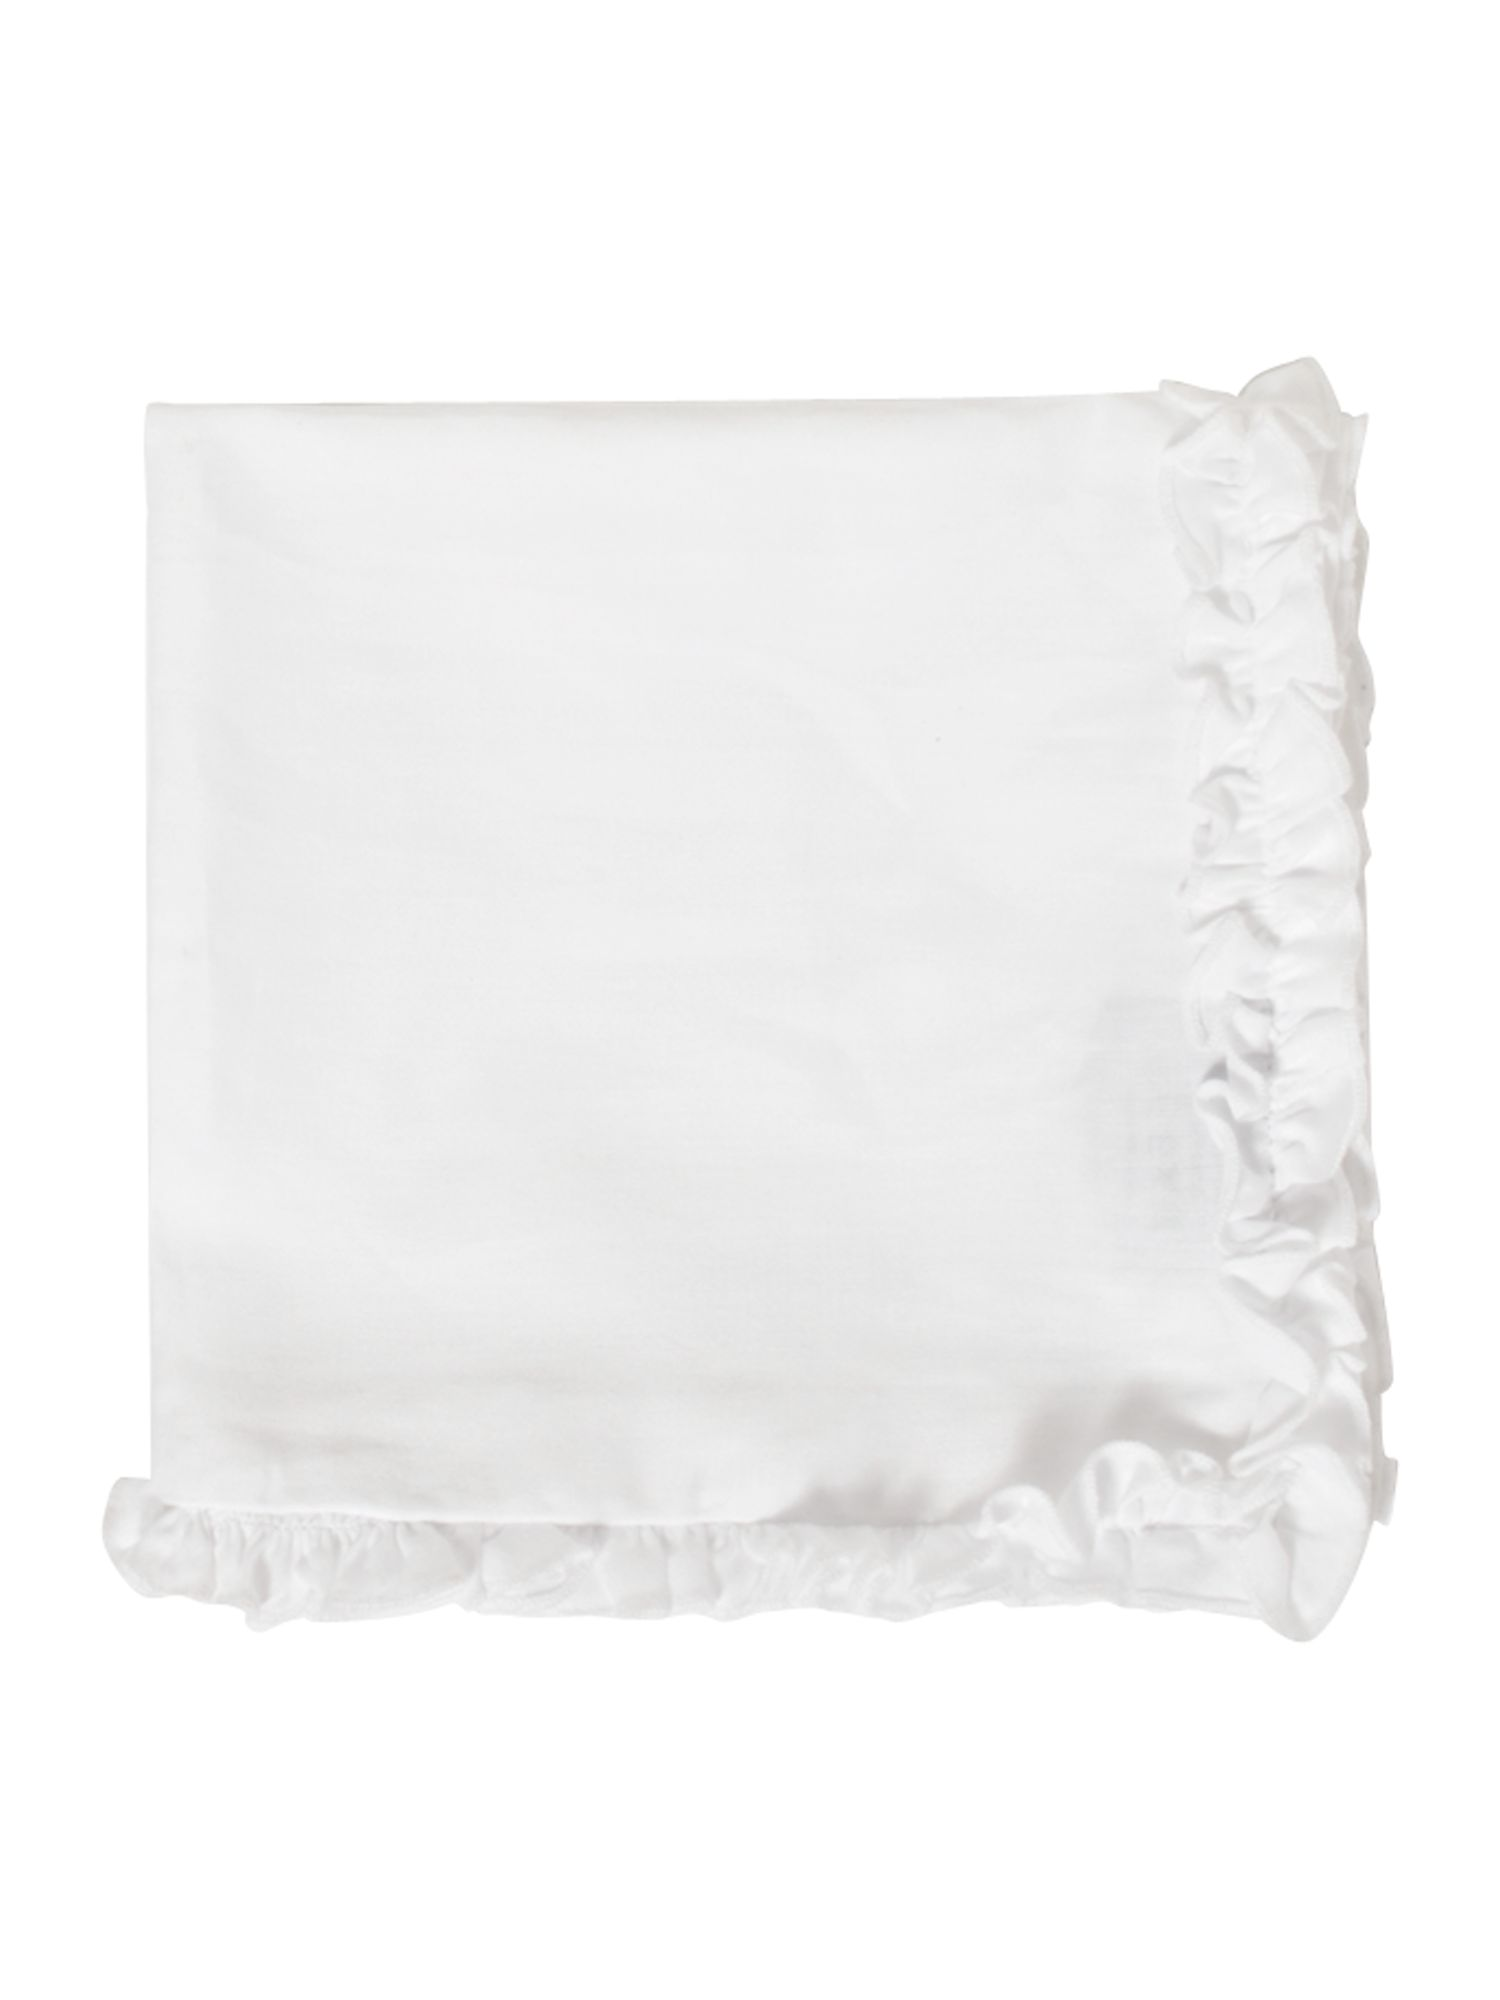 Verity ruffle edge napkin